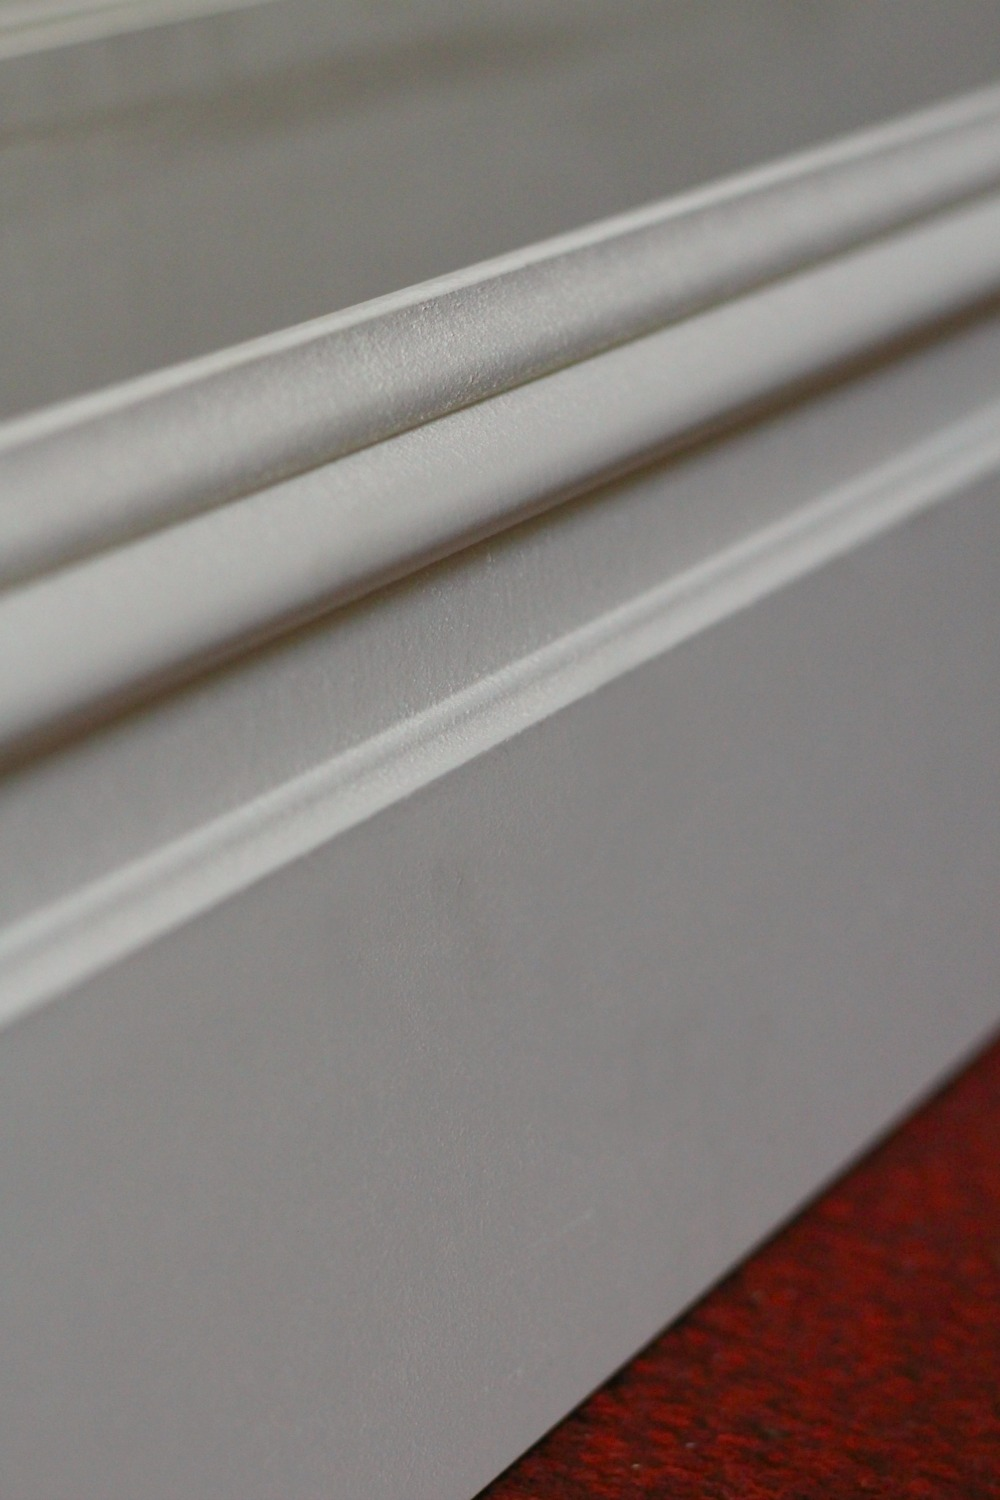 Skirting boards from The Skirting Board Shop